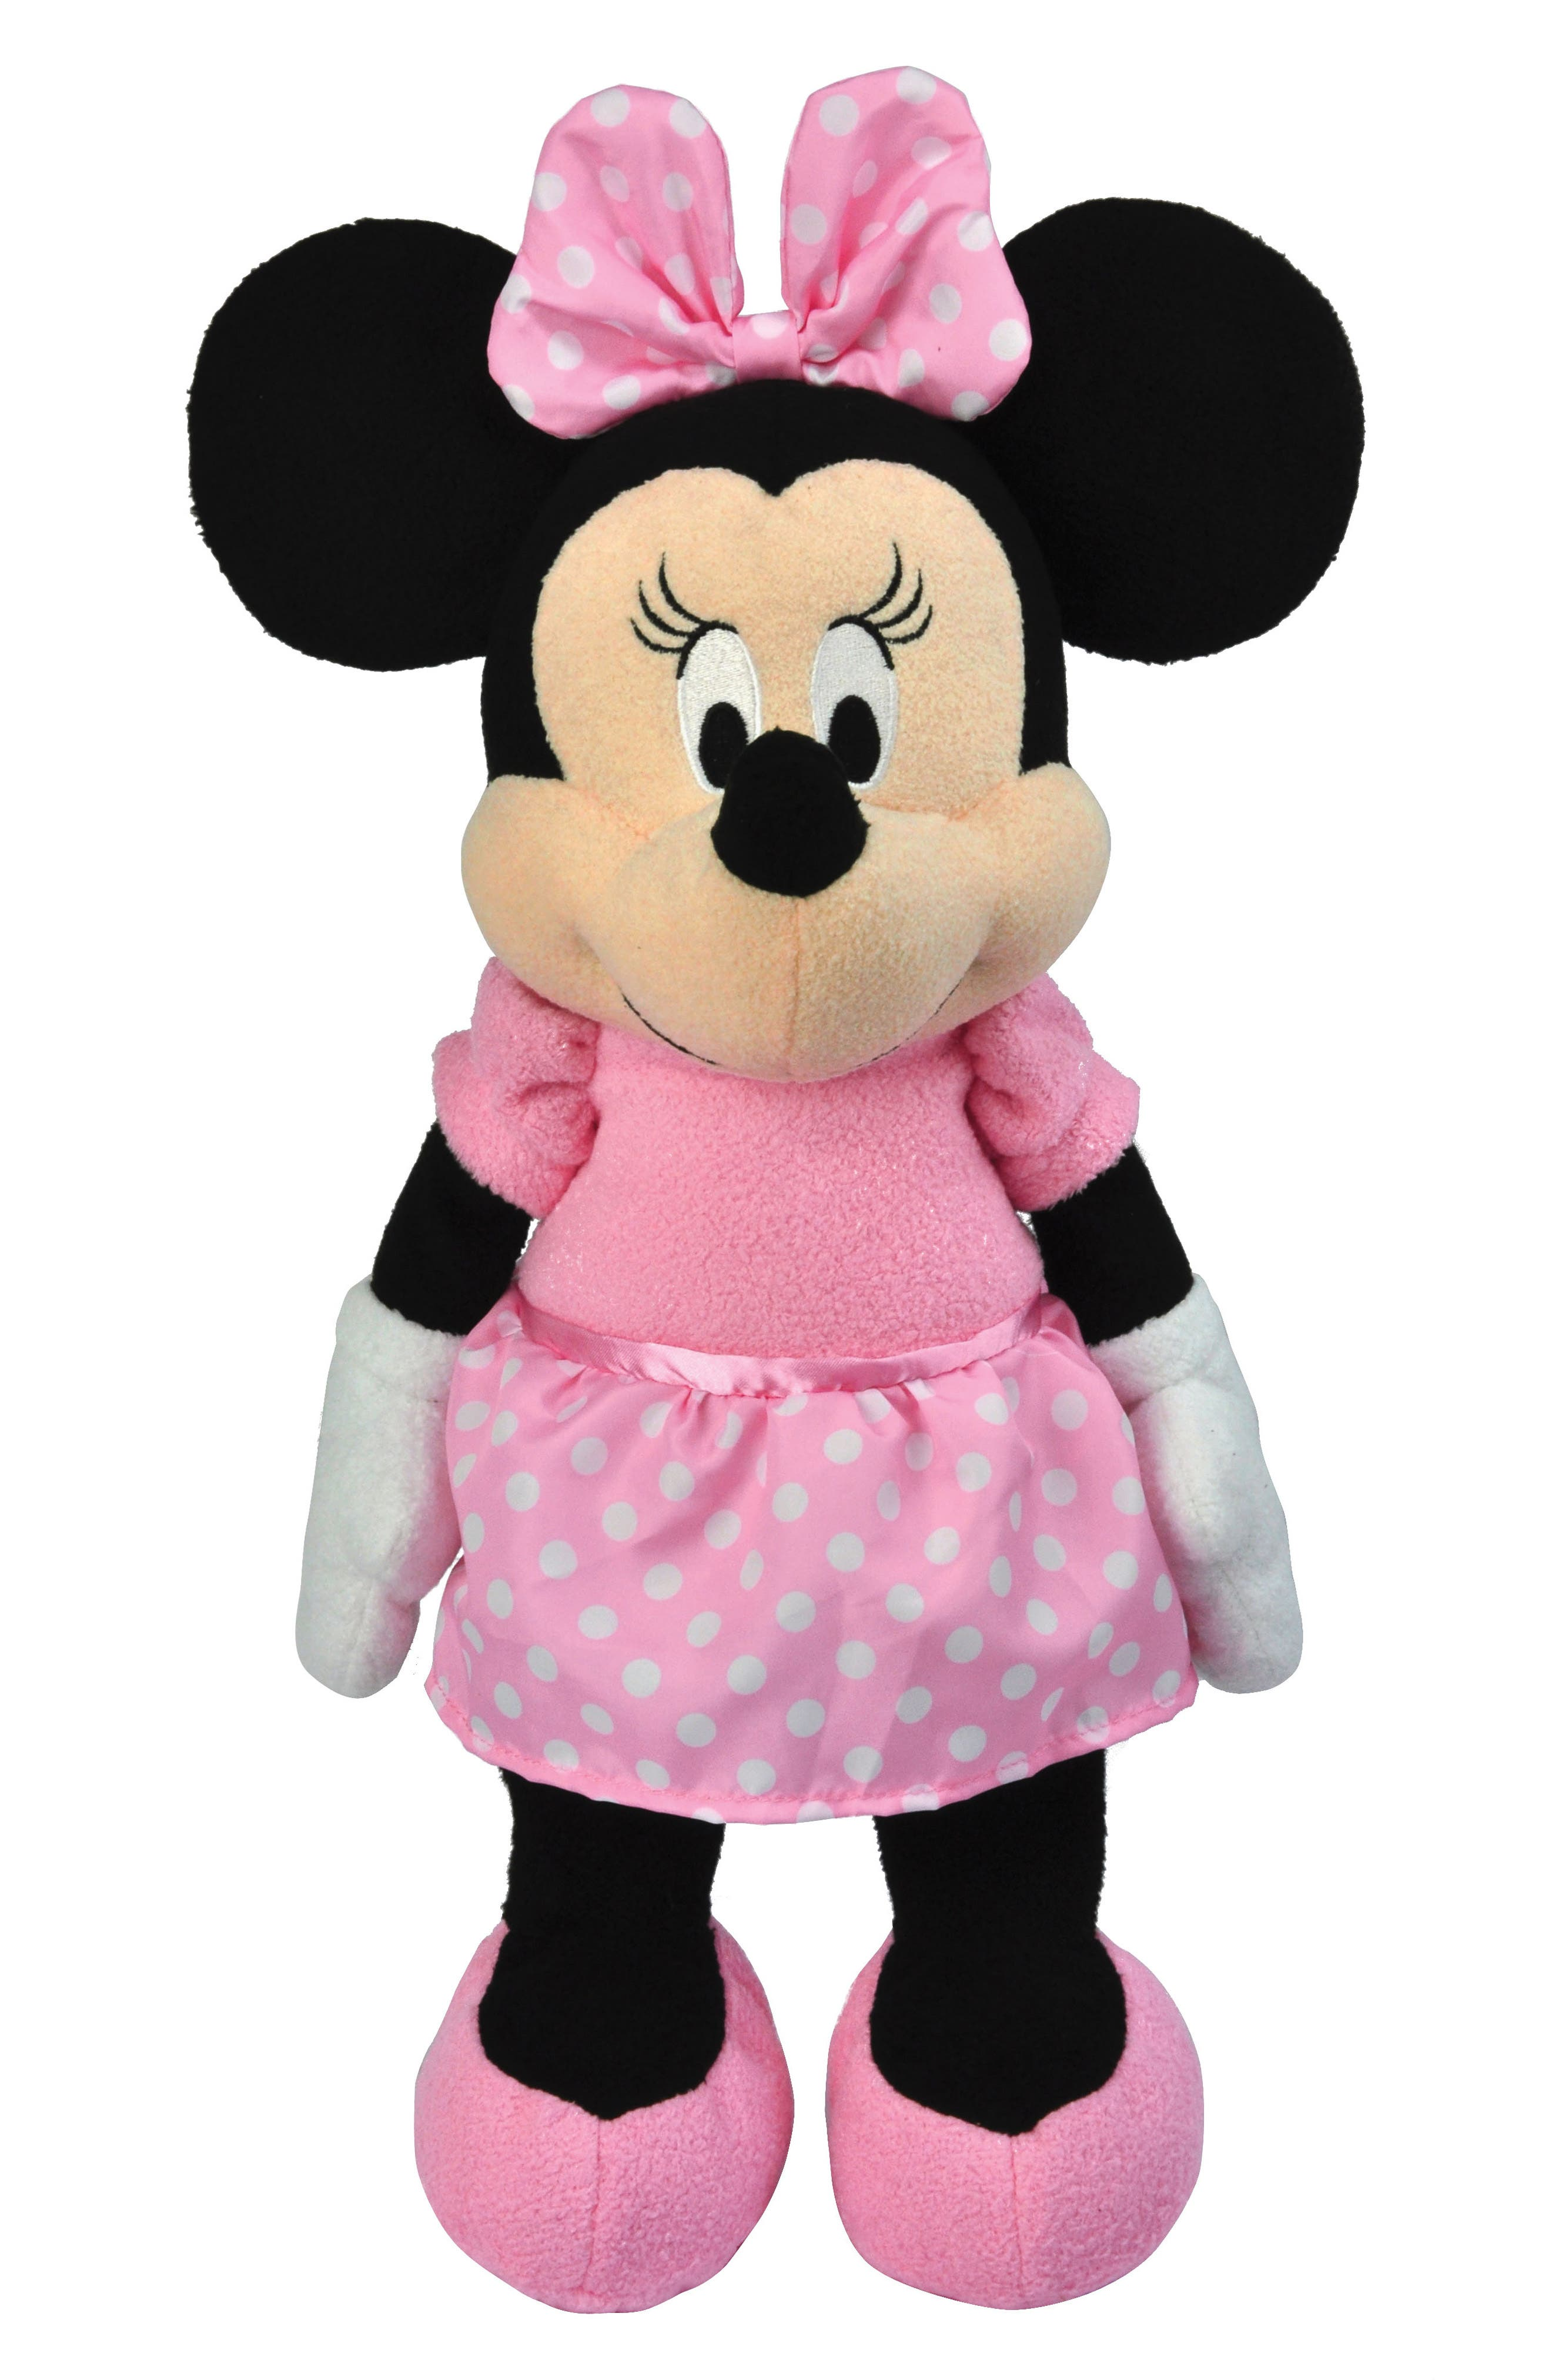 Minnie Mouse Floppy Plush Toy, Main, color, PINK